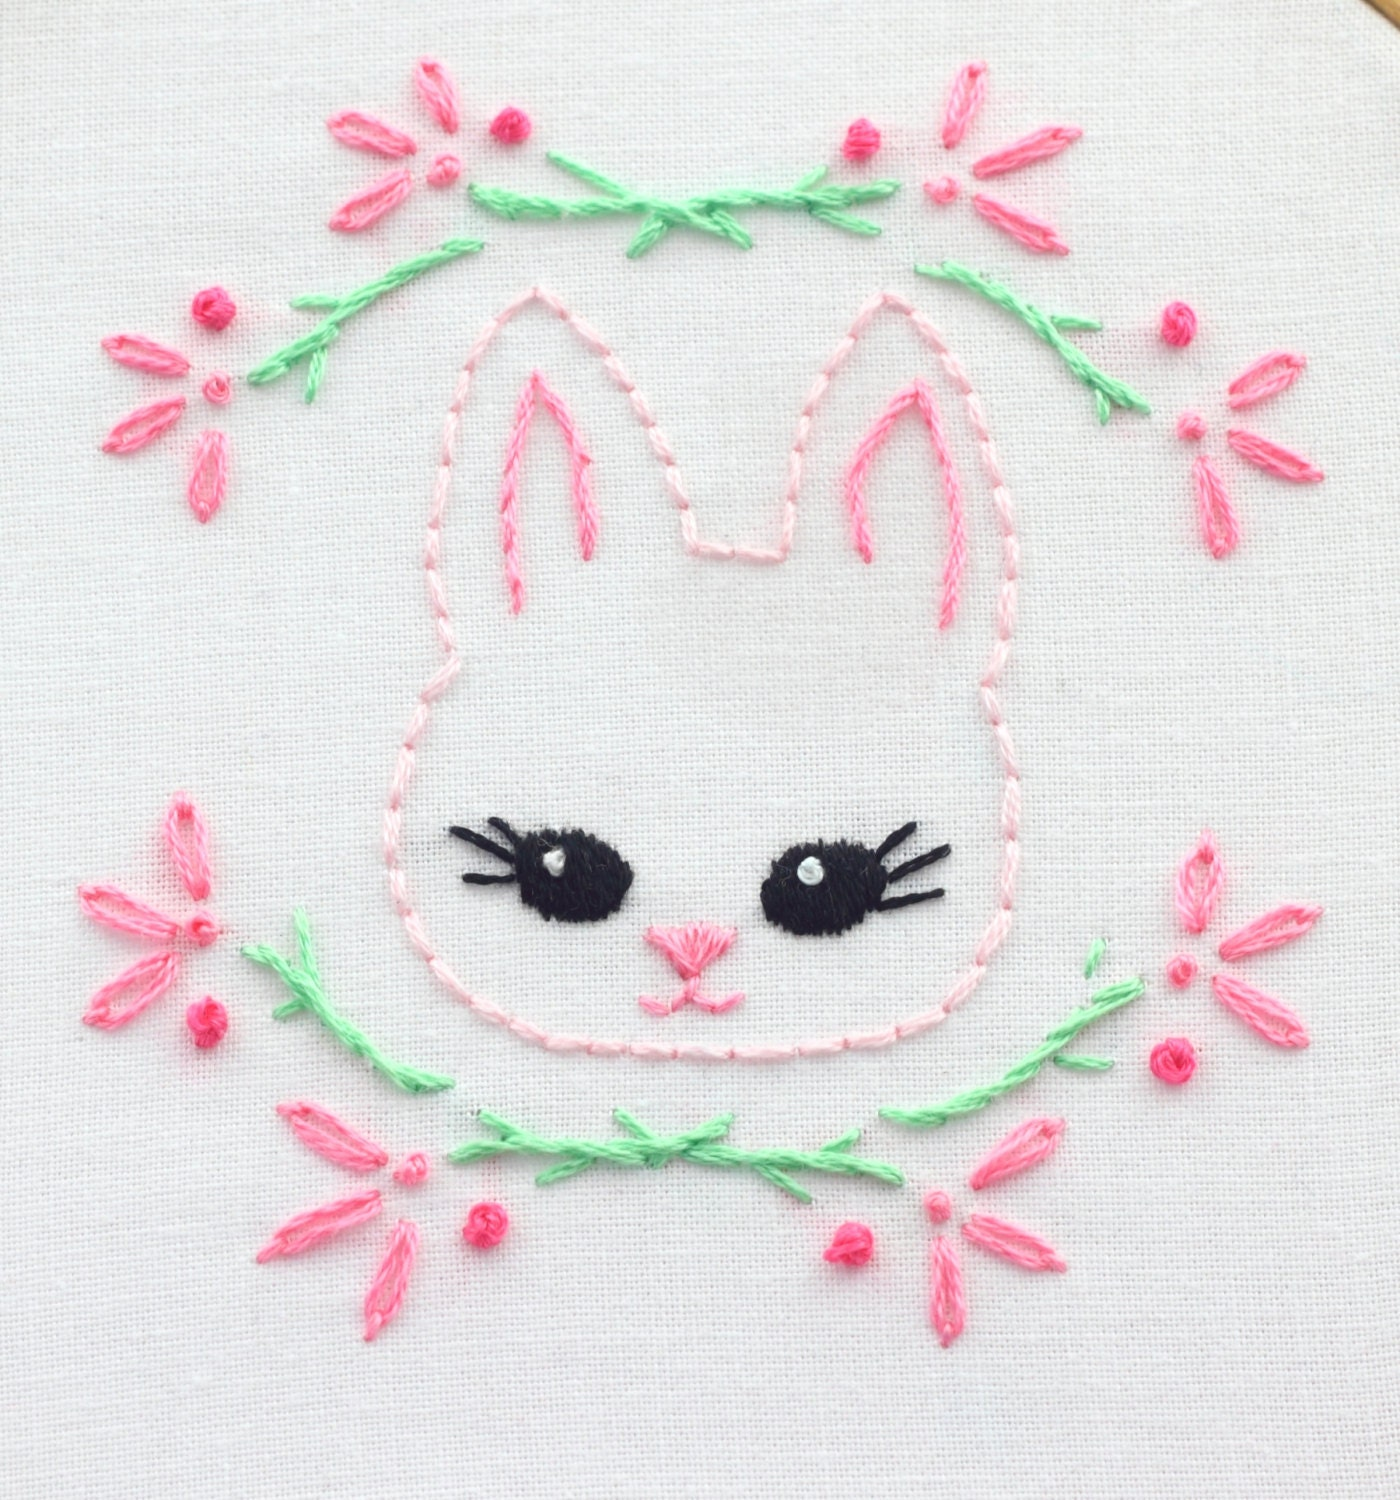 Baby Girl Embroidery Design Baby Embroidery Pattern Hand